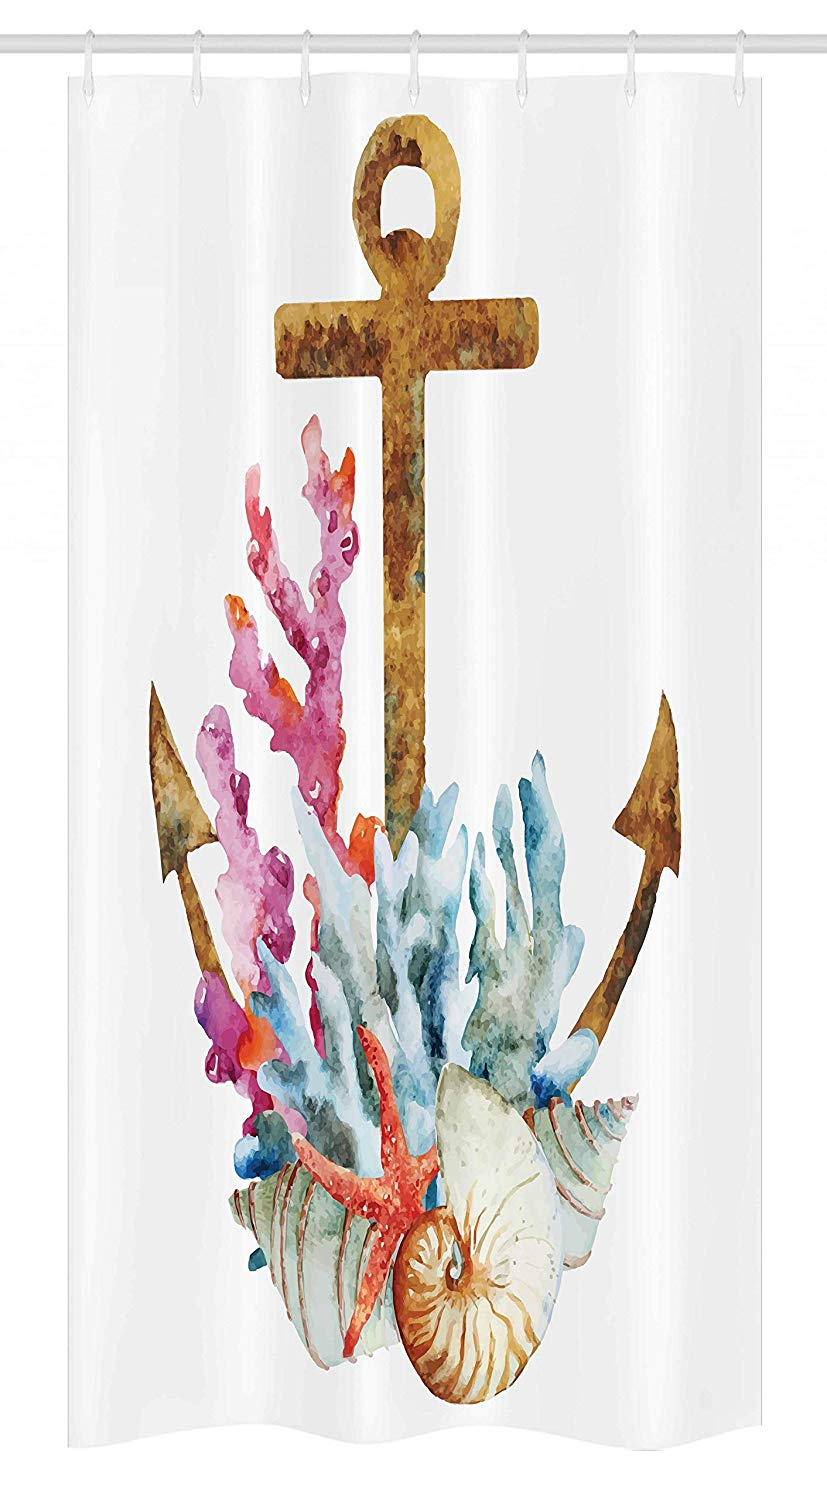 Ambesonne Anchor Stall Shower Curtain, Anchor with Corals Seaweed Nature Deep Sea Underwater Life Diving Enjoyment, Fabric Bathroom Decor Set with Hooks, 36